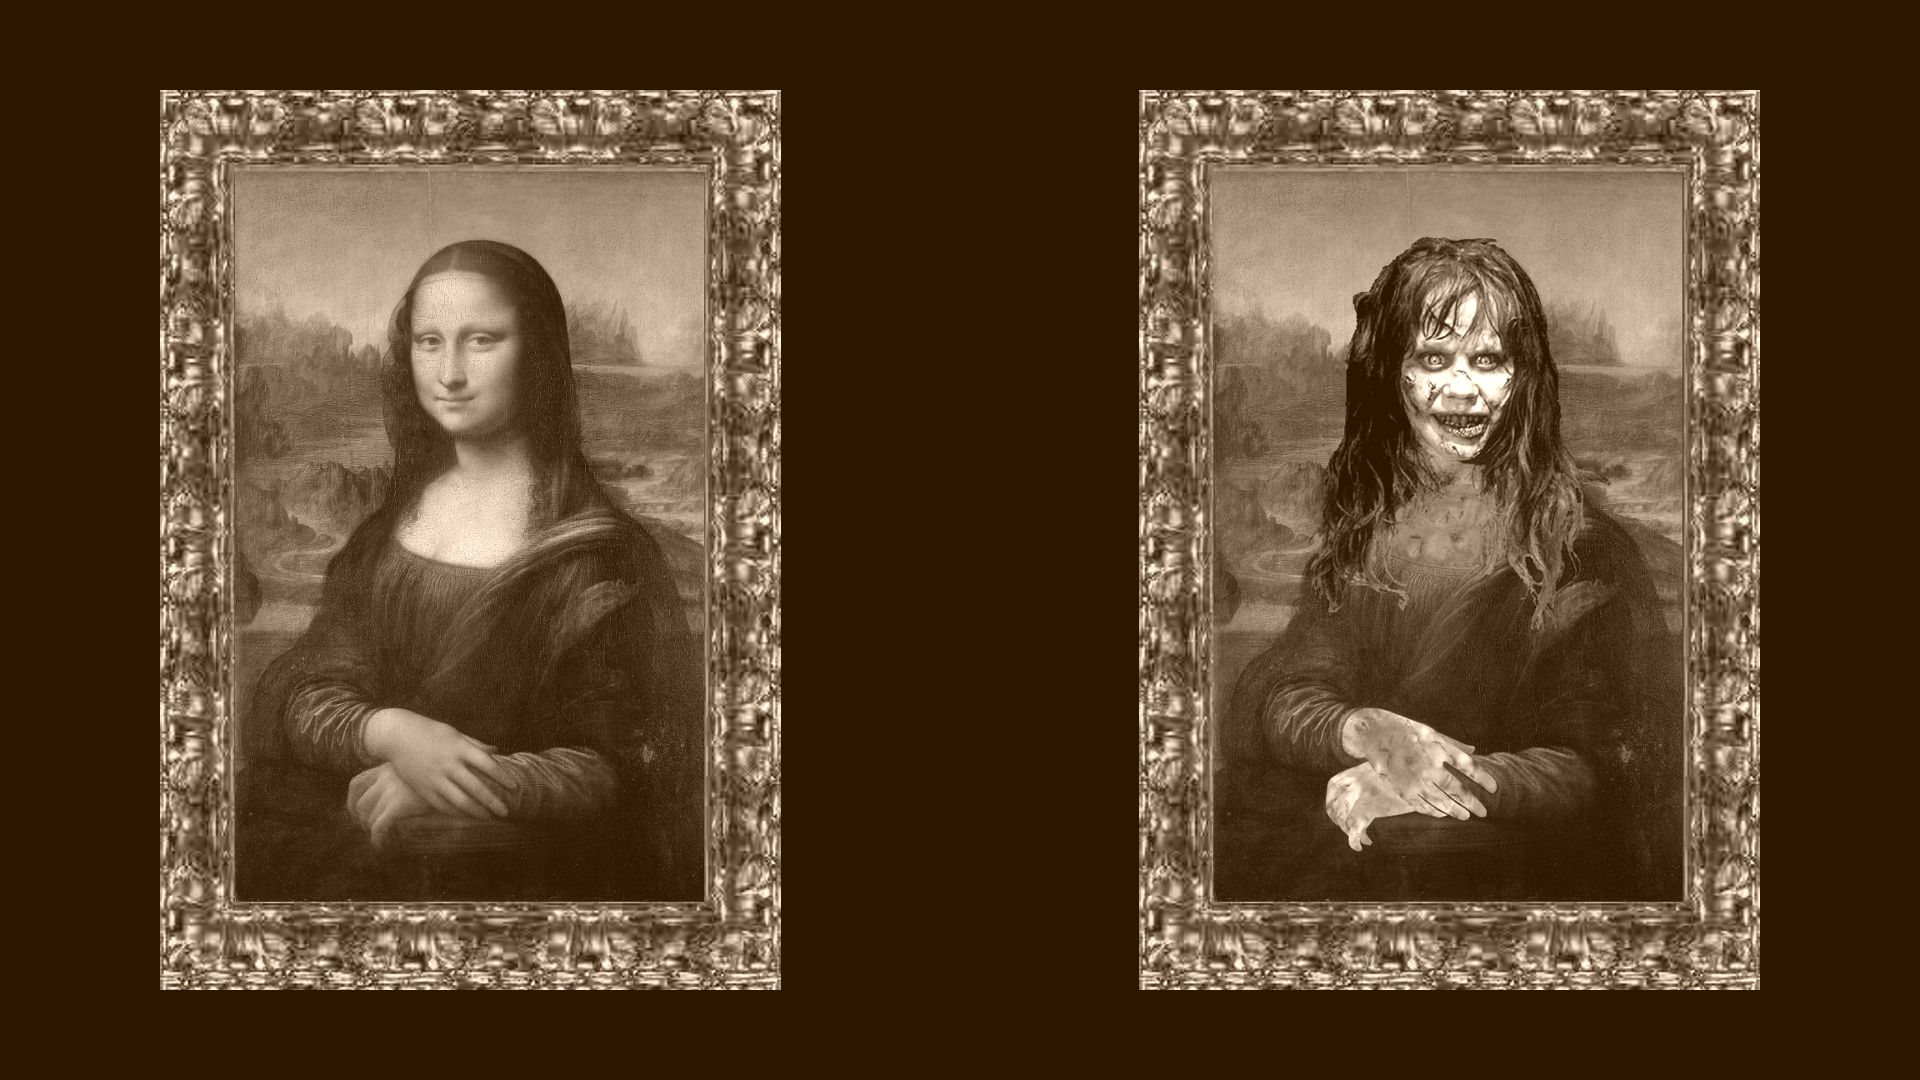 Mona Lisa Wallpaper Full Hd The Exorcist Wallpaper